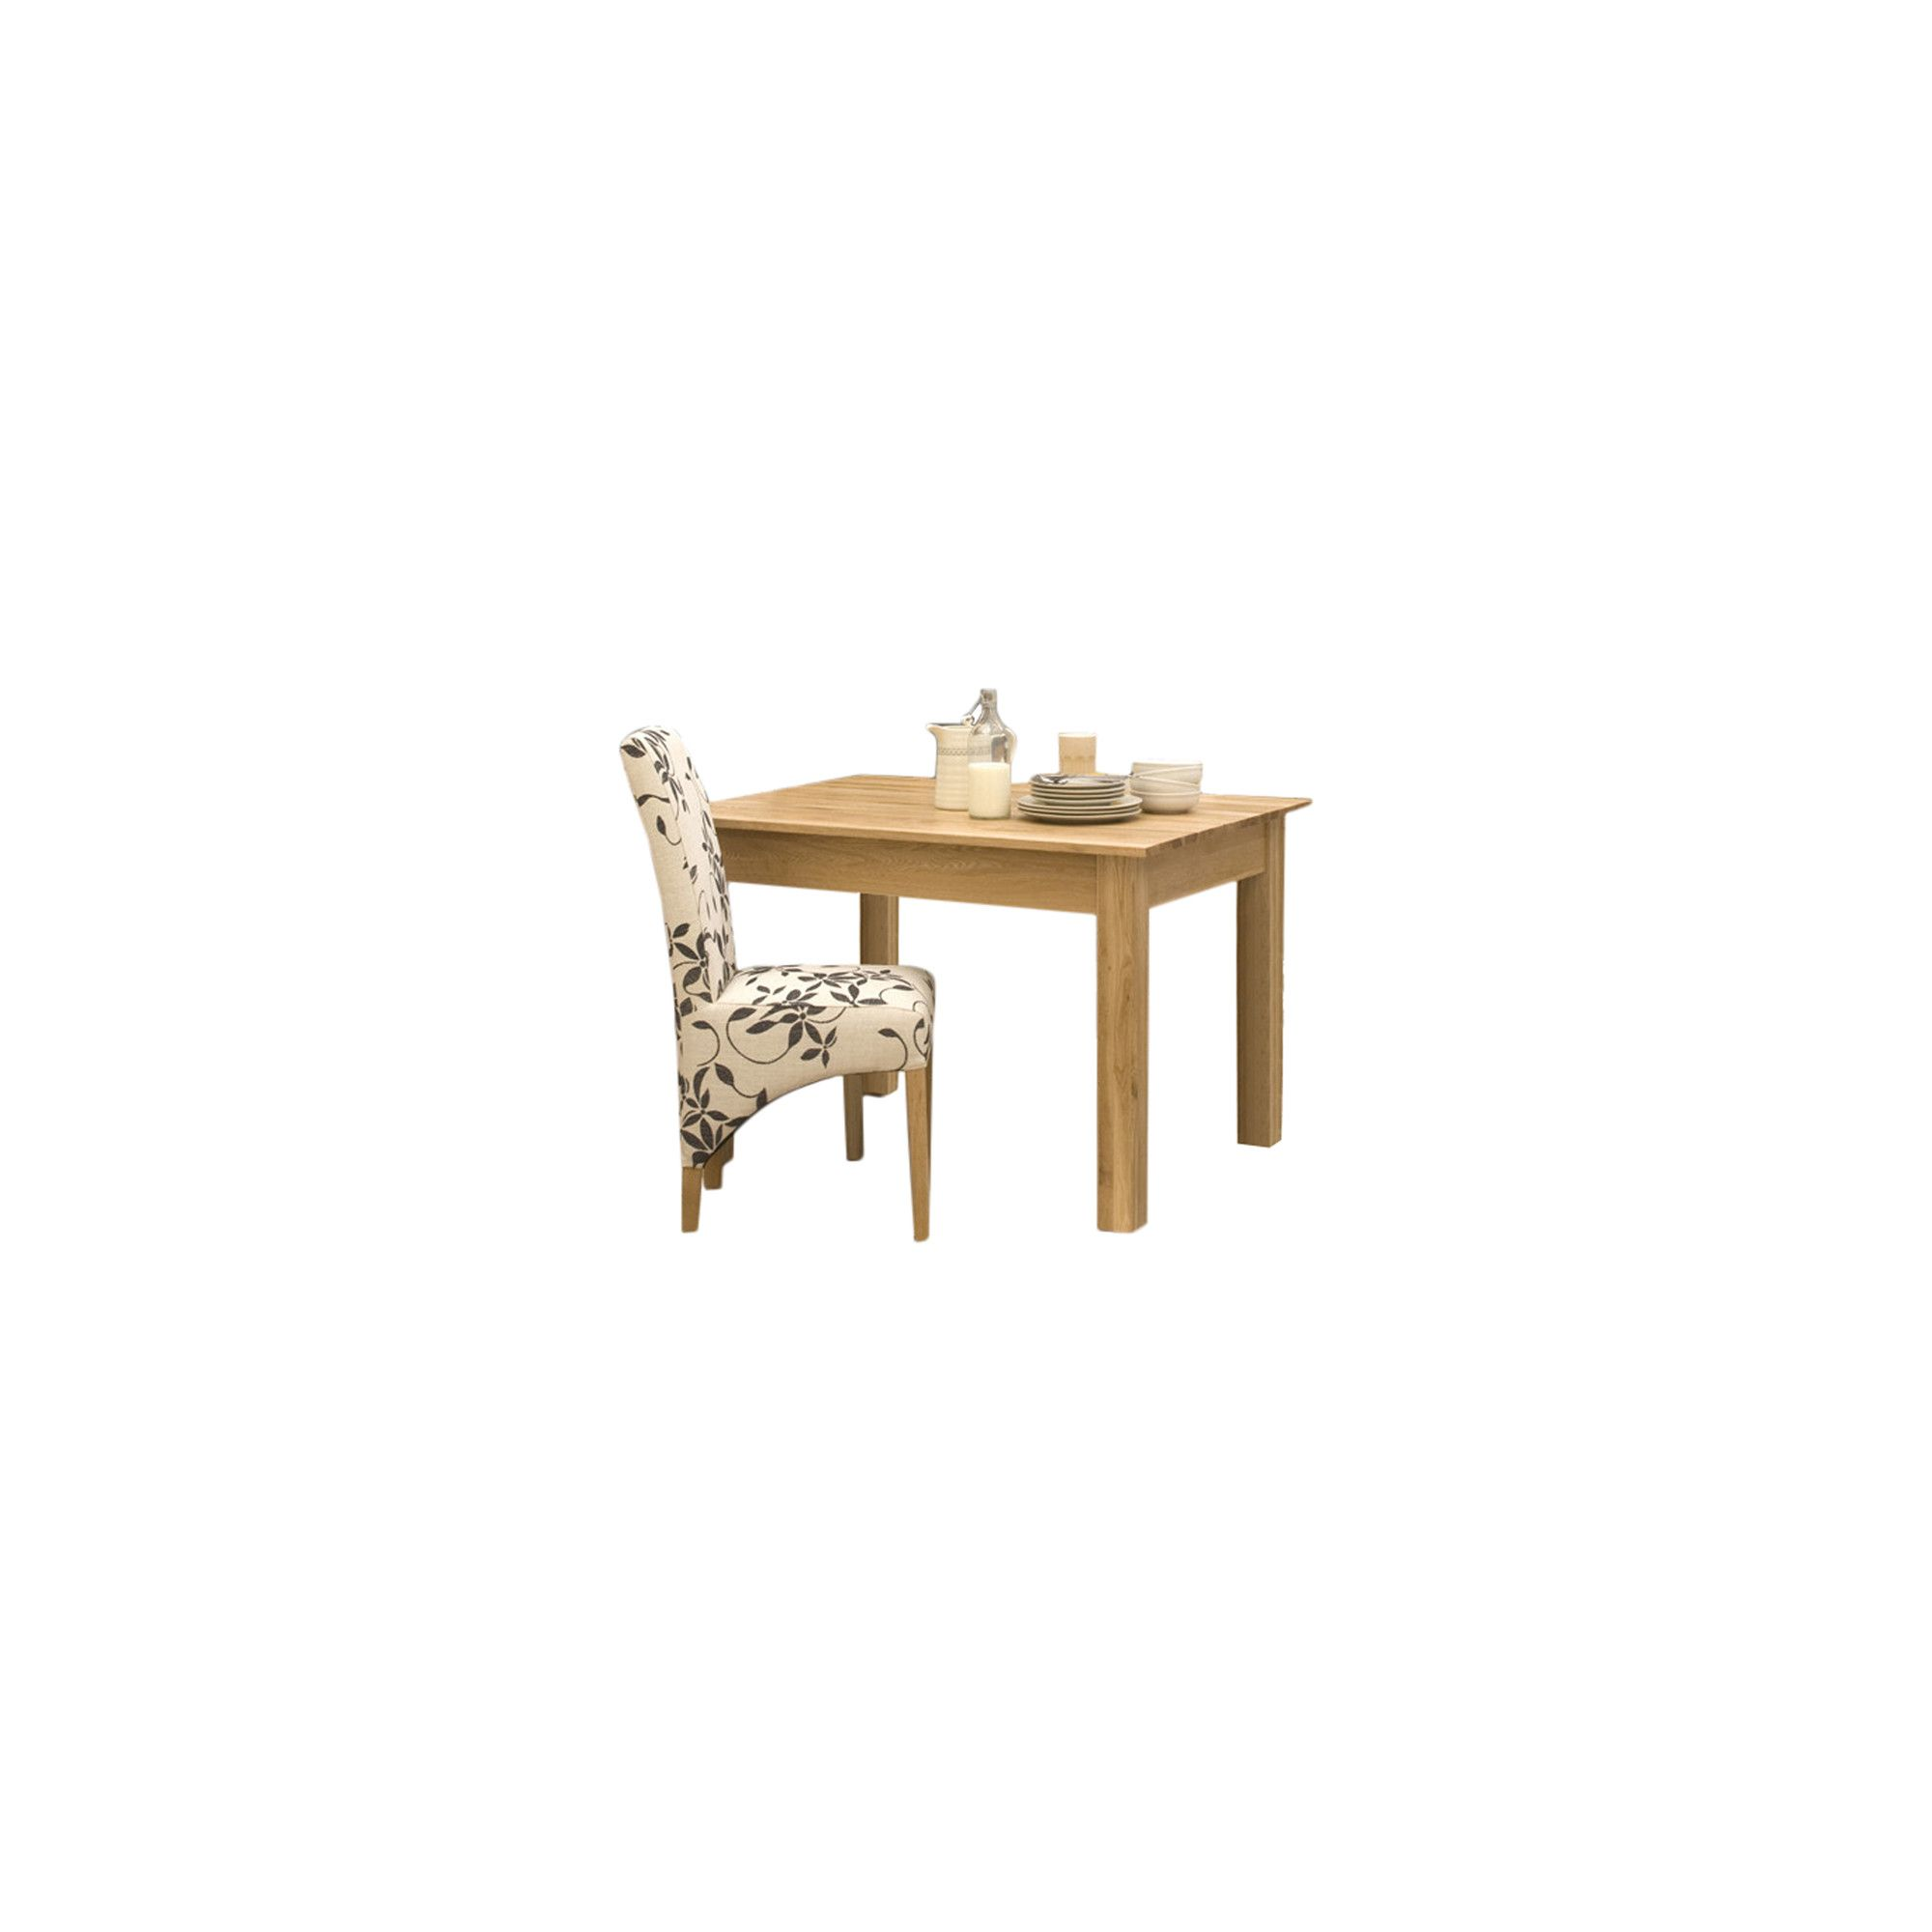 Baumhaus Mobel Oak Small Solid Oak Dining Table - 90cm